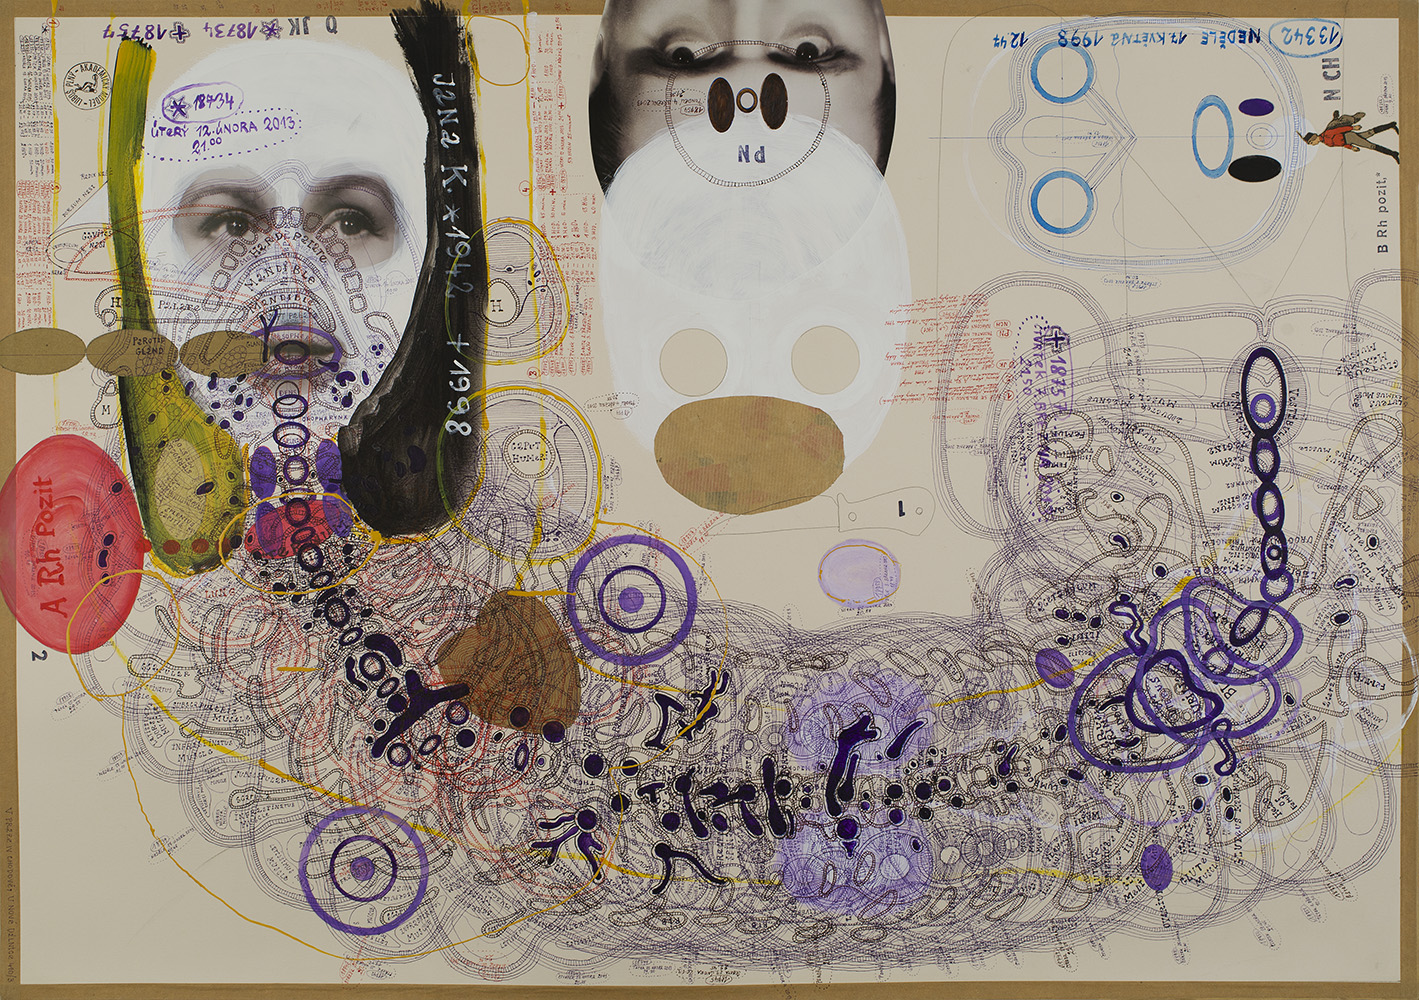 Luboš Plný,    Untitled  , 2013, Ink, acrylic, mixed media on paper, 23.5 x 33 inches, 59.7 x 83.8 cm, LuP 58